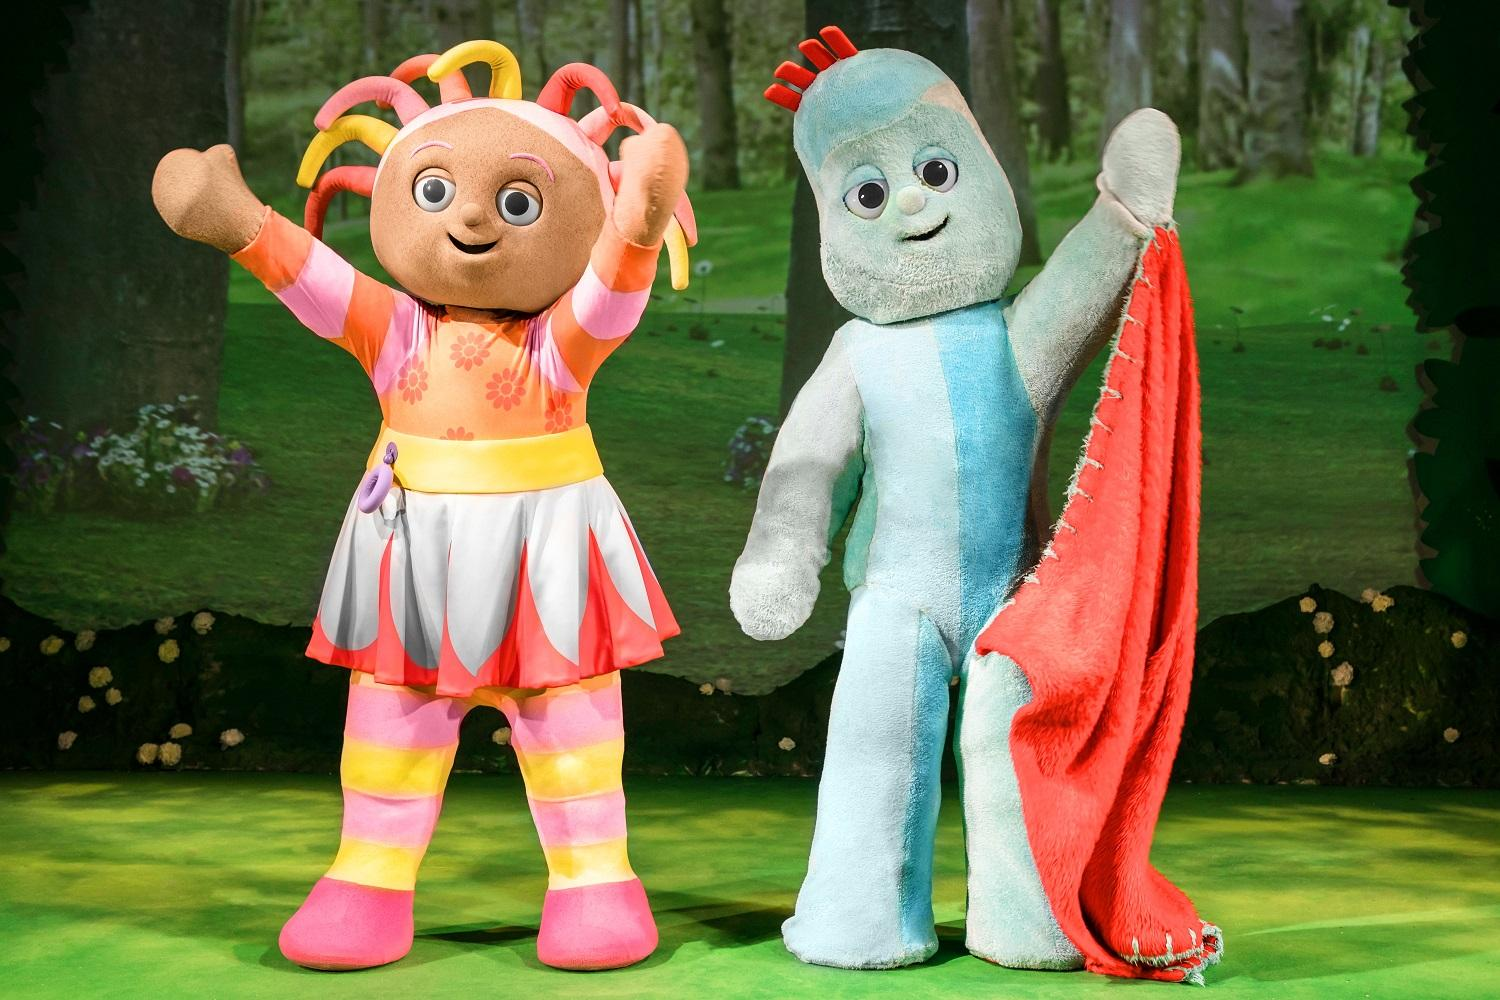 Image of Upsy Daisy and Iggle Piggle waving